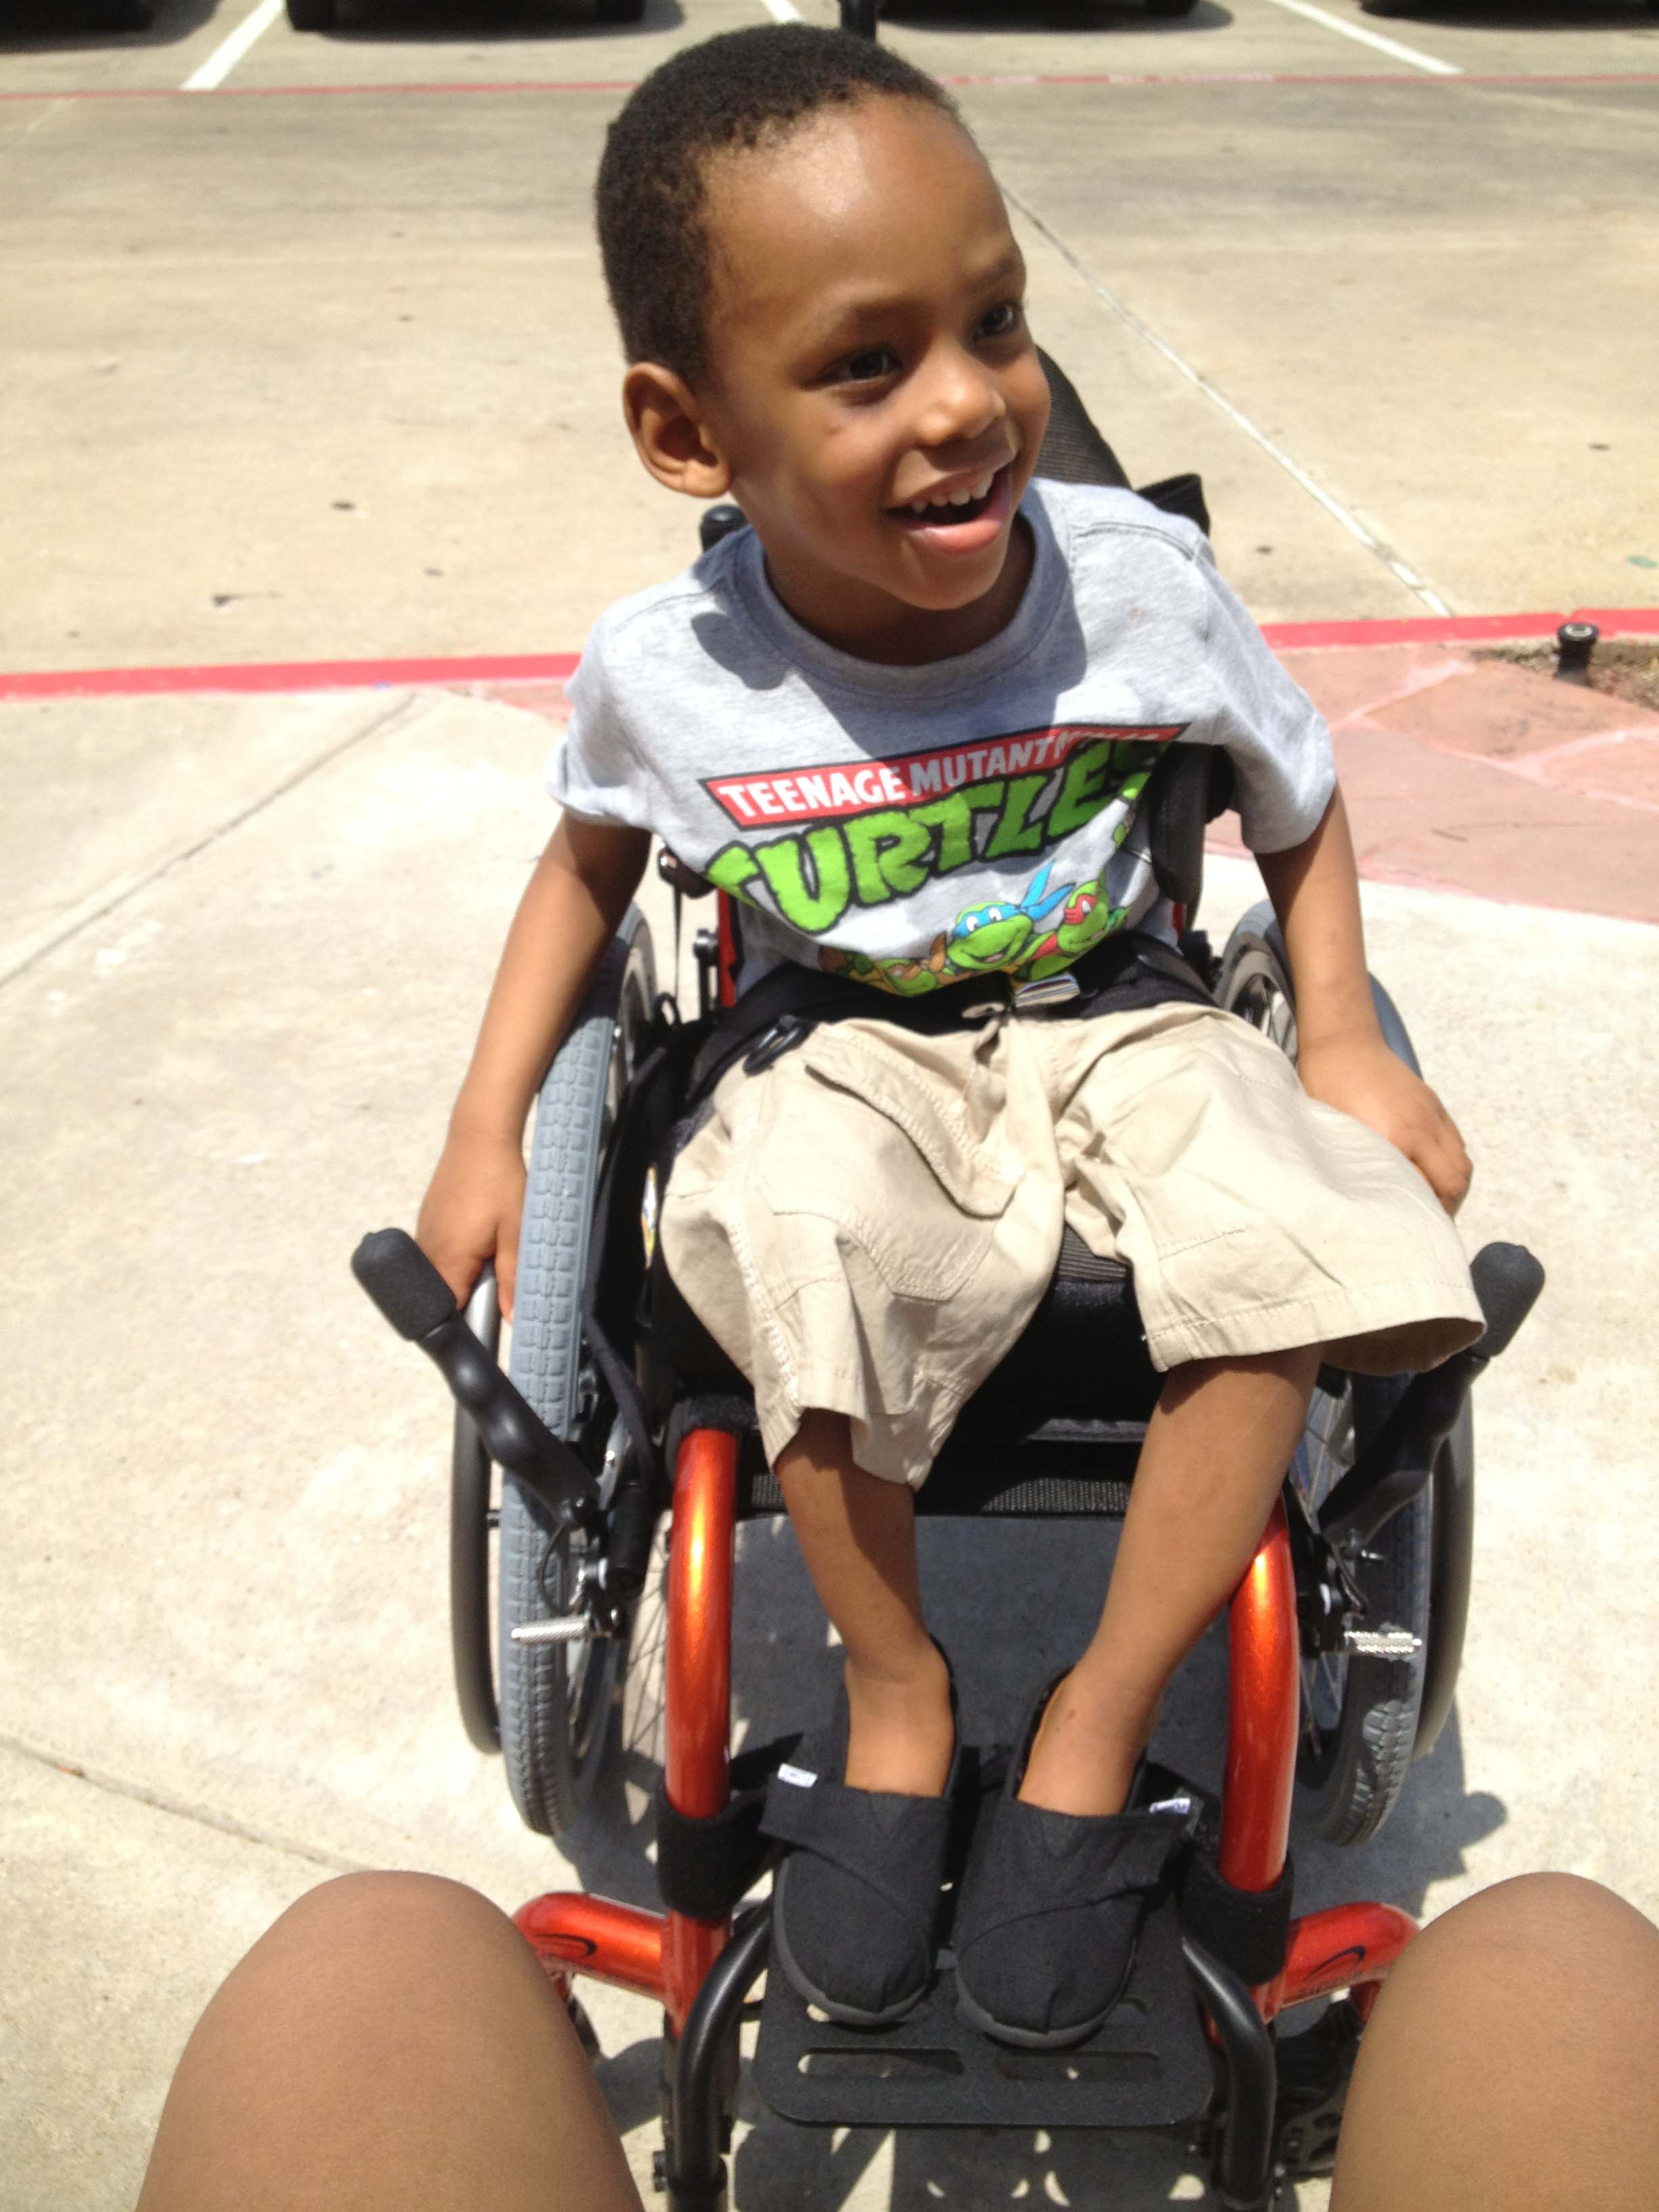 In July 2013, Trinton enjoyed being completely mobile while taking a ride in his first wheelchair.